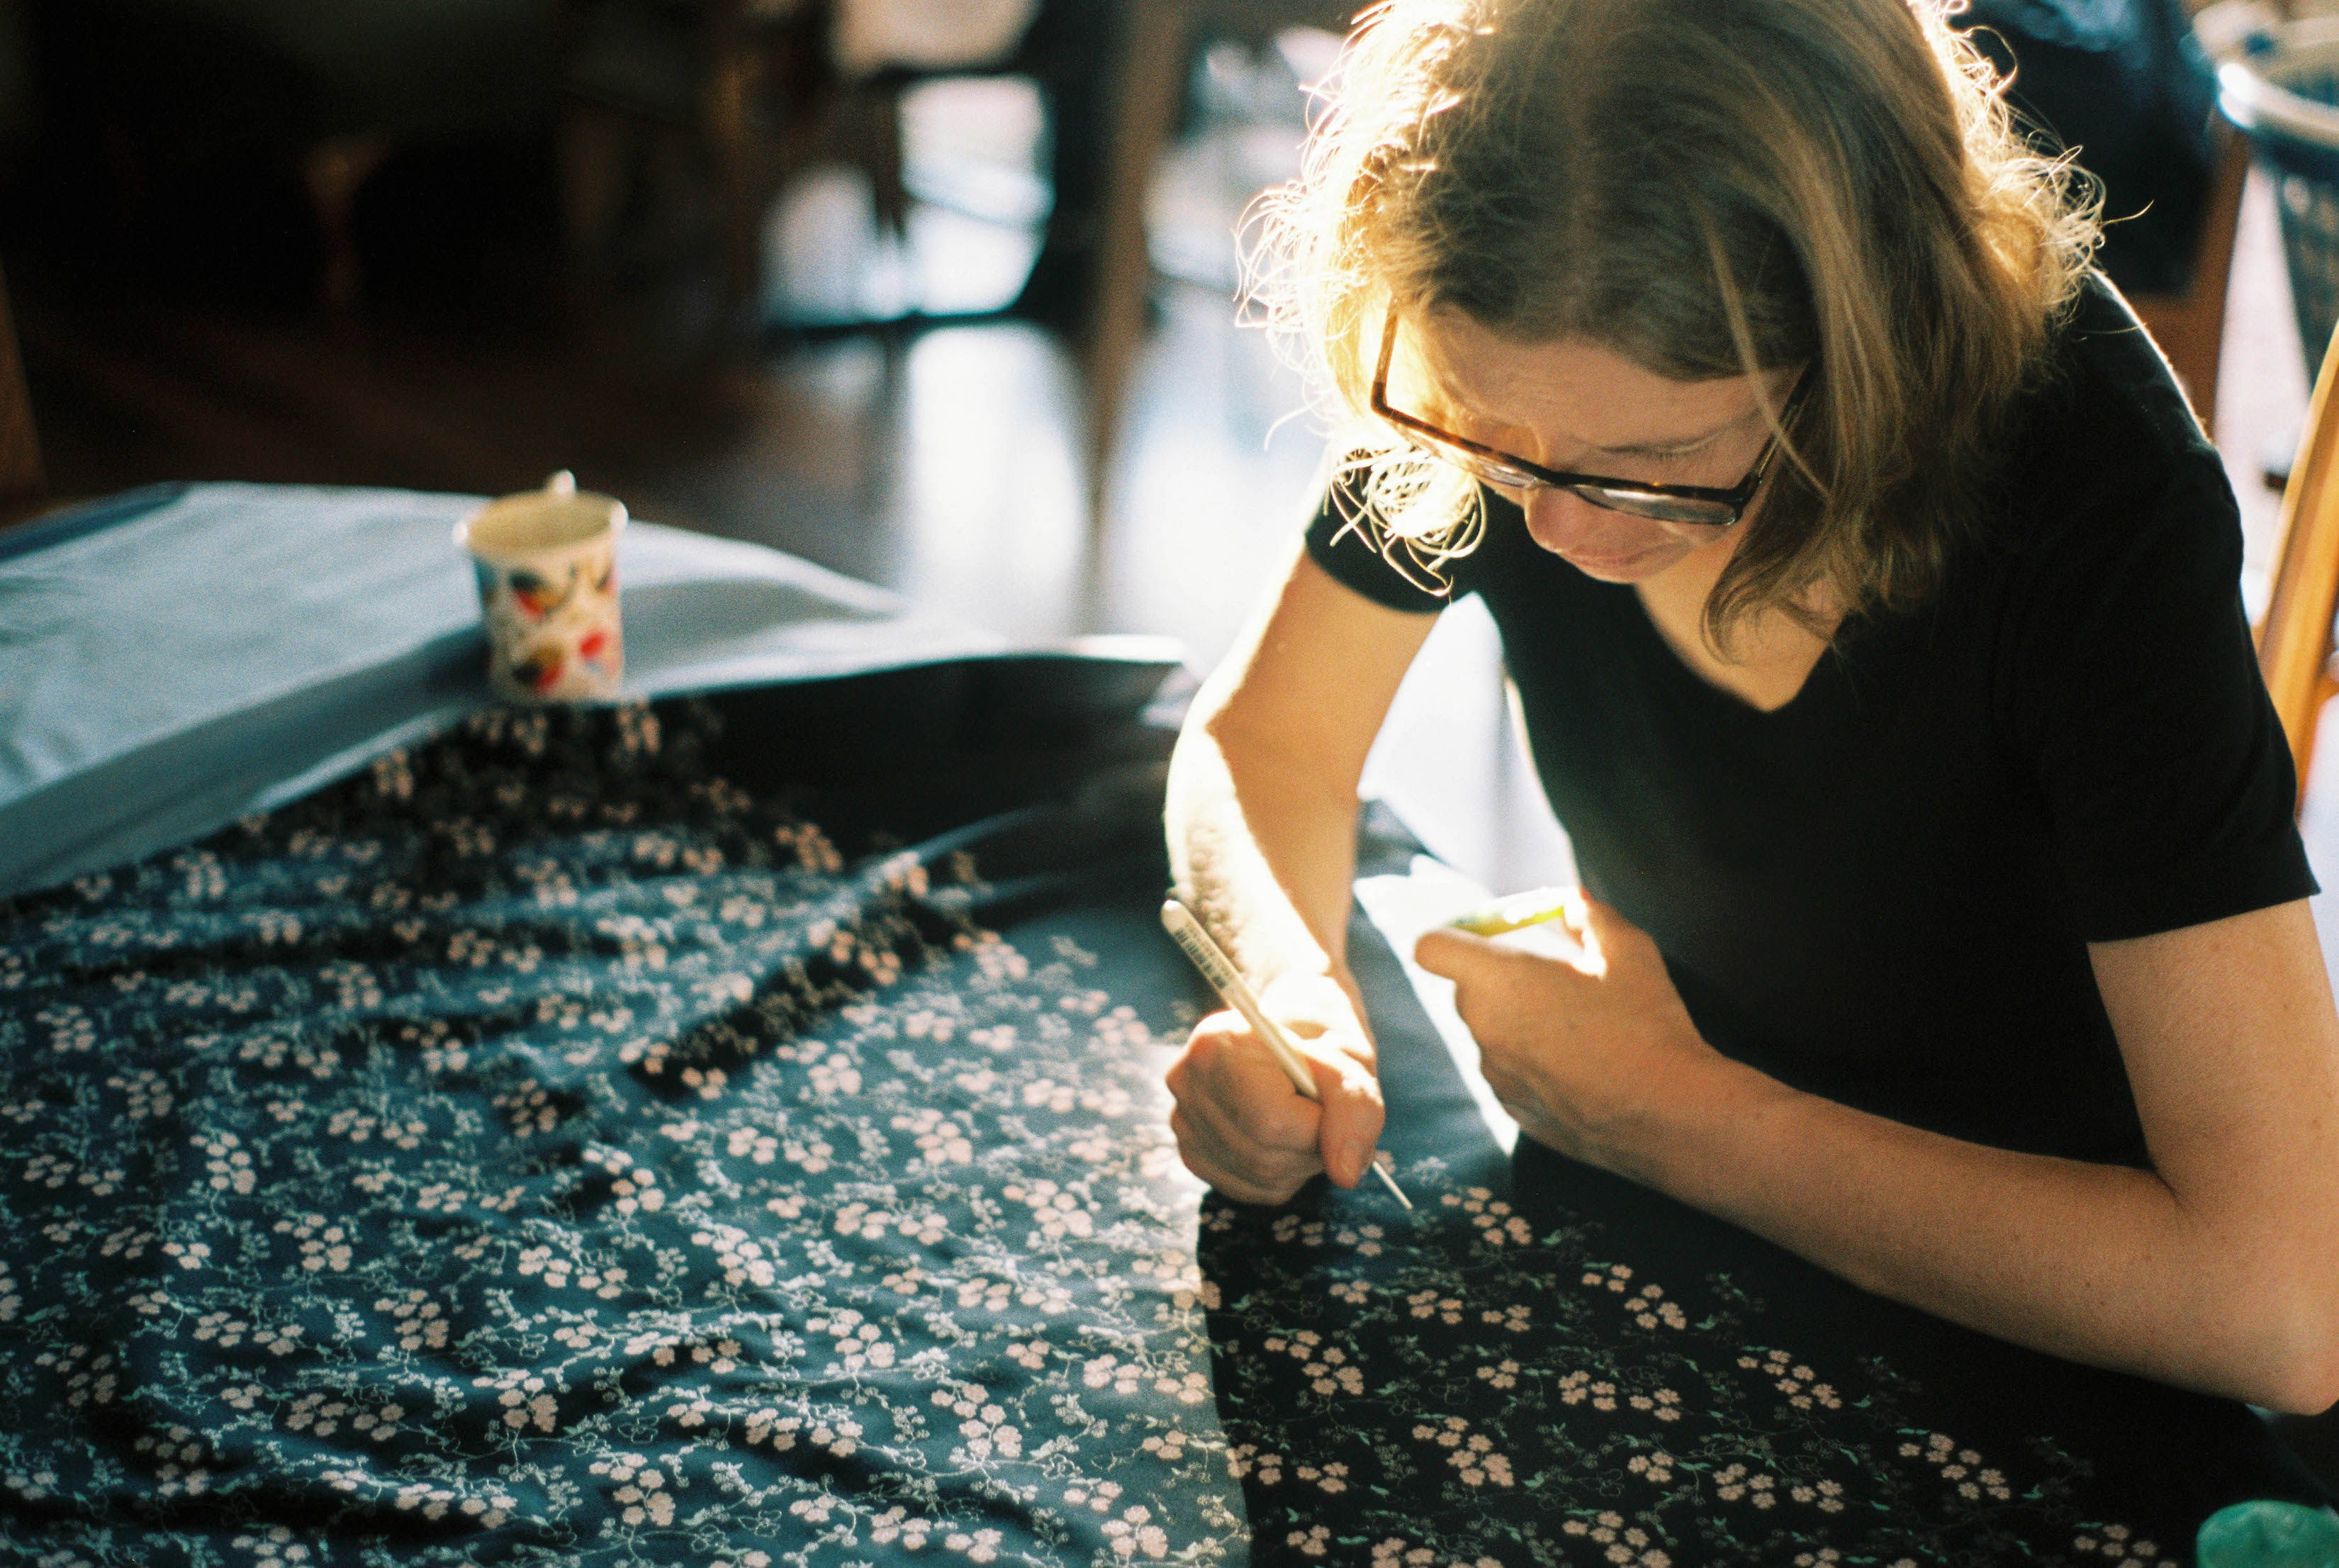 A photo of the Mother-of-the-Groom hand-painting fabric for bowties taken by Rhianna May Destination Wedding Photography